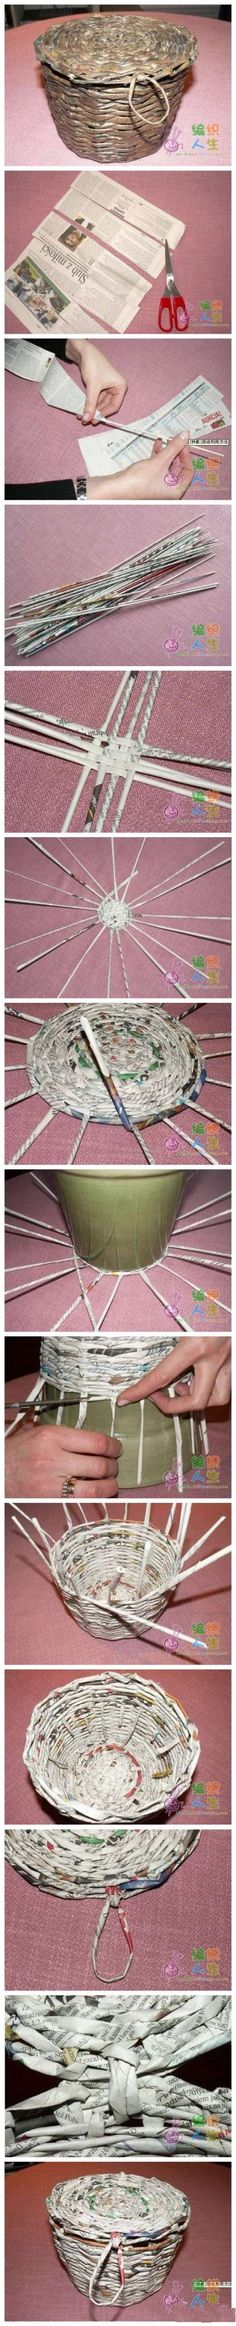 #wicker #basket with #recycled #newspapers for #mothersday